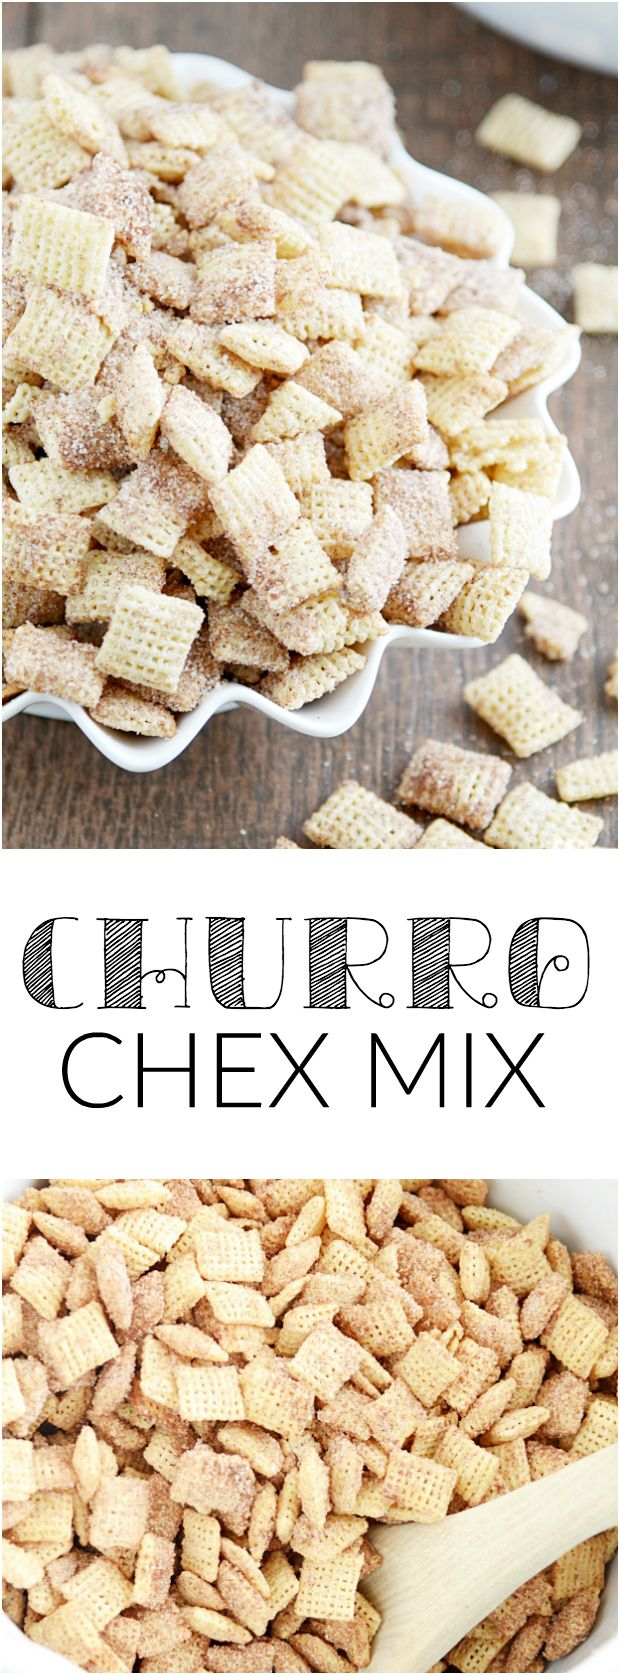 Guest Post: Something Swanky's Churro Chex Mix (GF, DF, Egg, Soy, Peanut/Tree nut Free, Top 8 Free, Vegan)Allergy Awesomeness